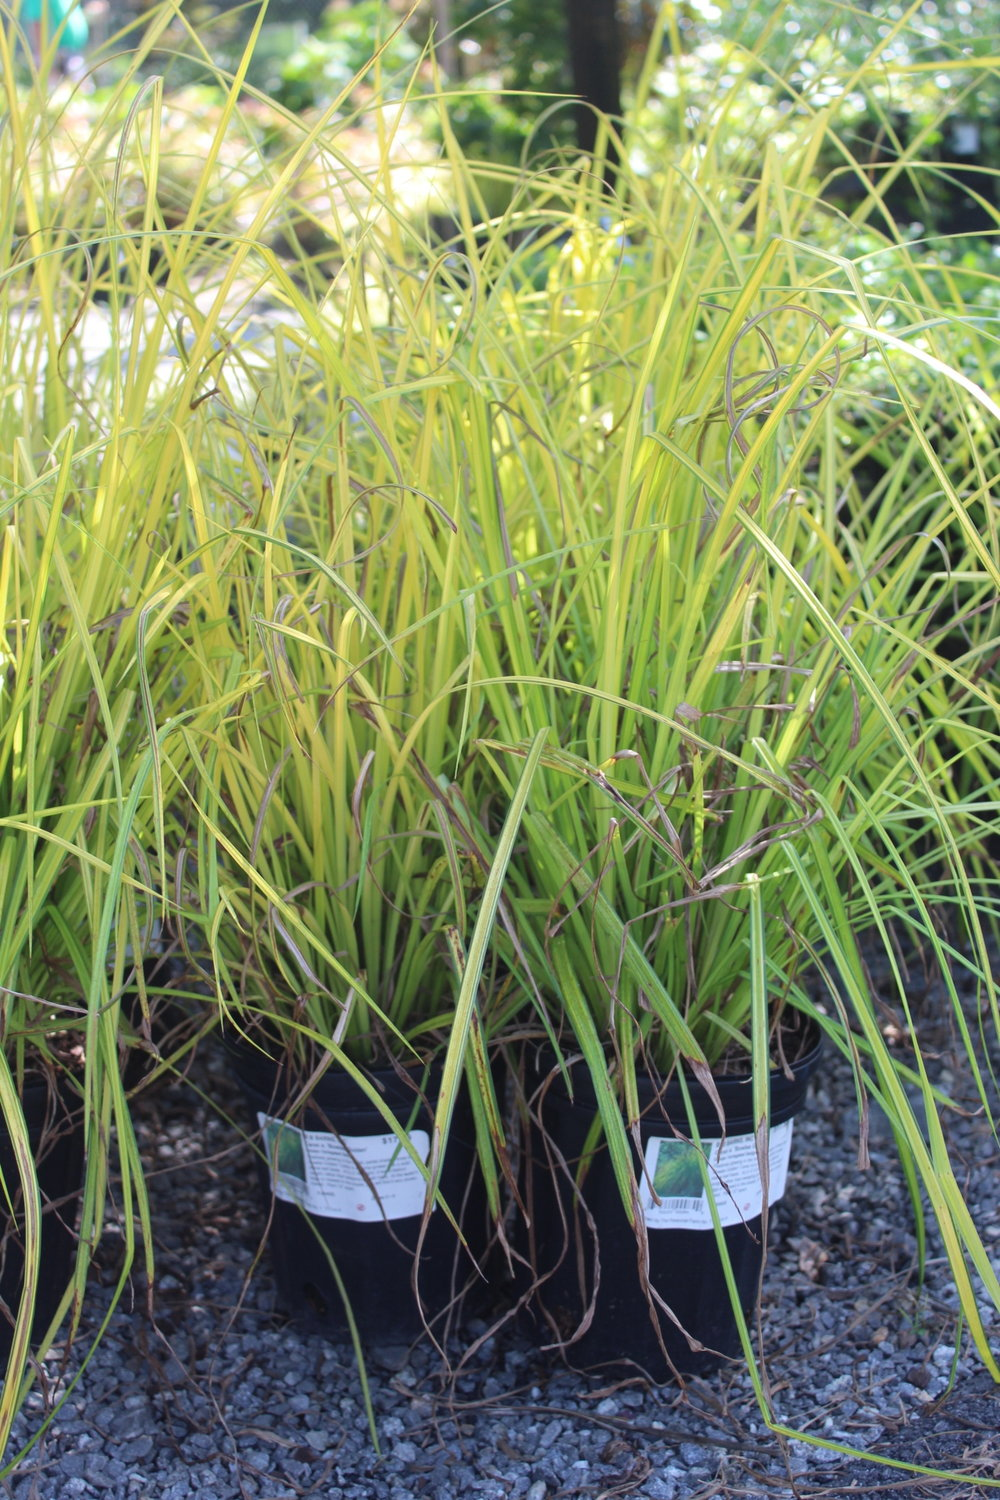 'Bowles Golden' Sedge is a bright chartreuse that reaches 2' tall, thrives in part sun-shade and loves wet soil, including standing water. Perfect for pond banks, rain gardens, and bogs.